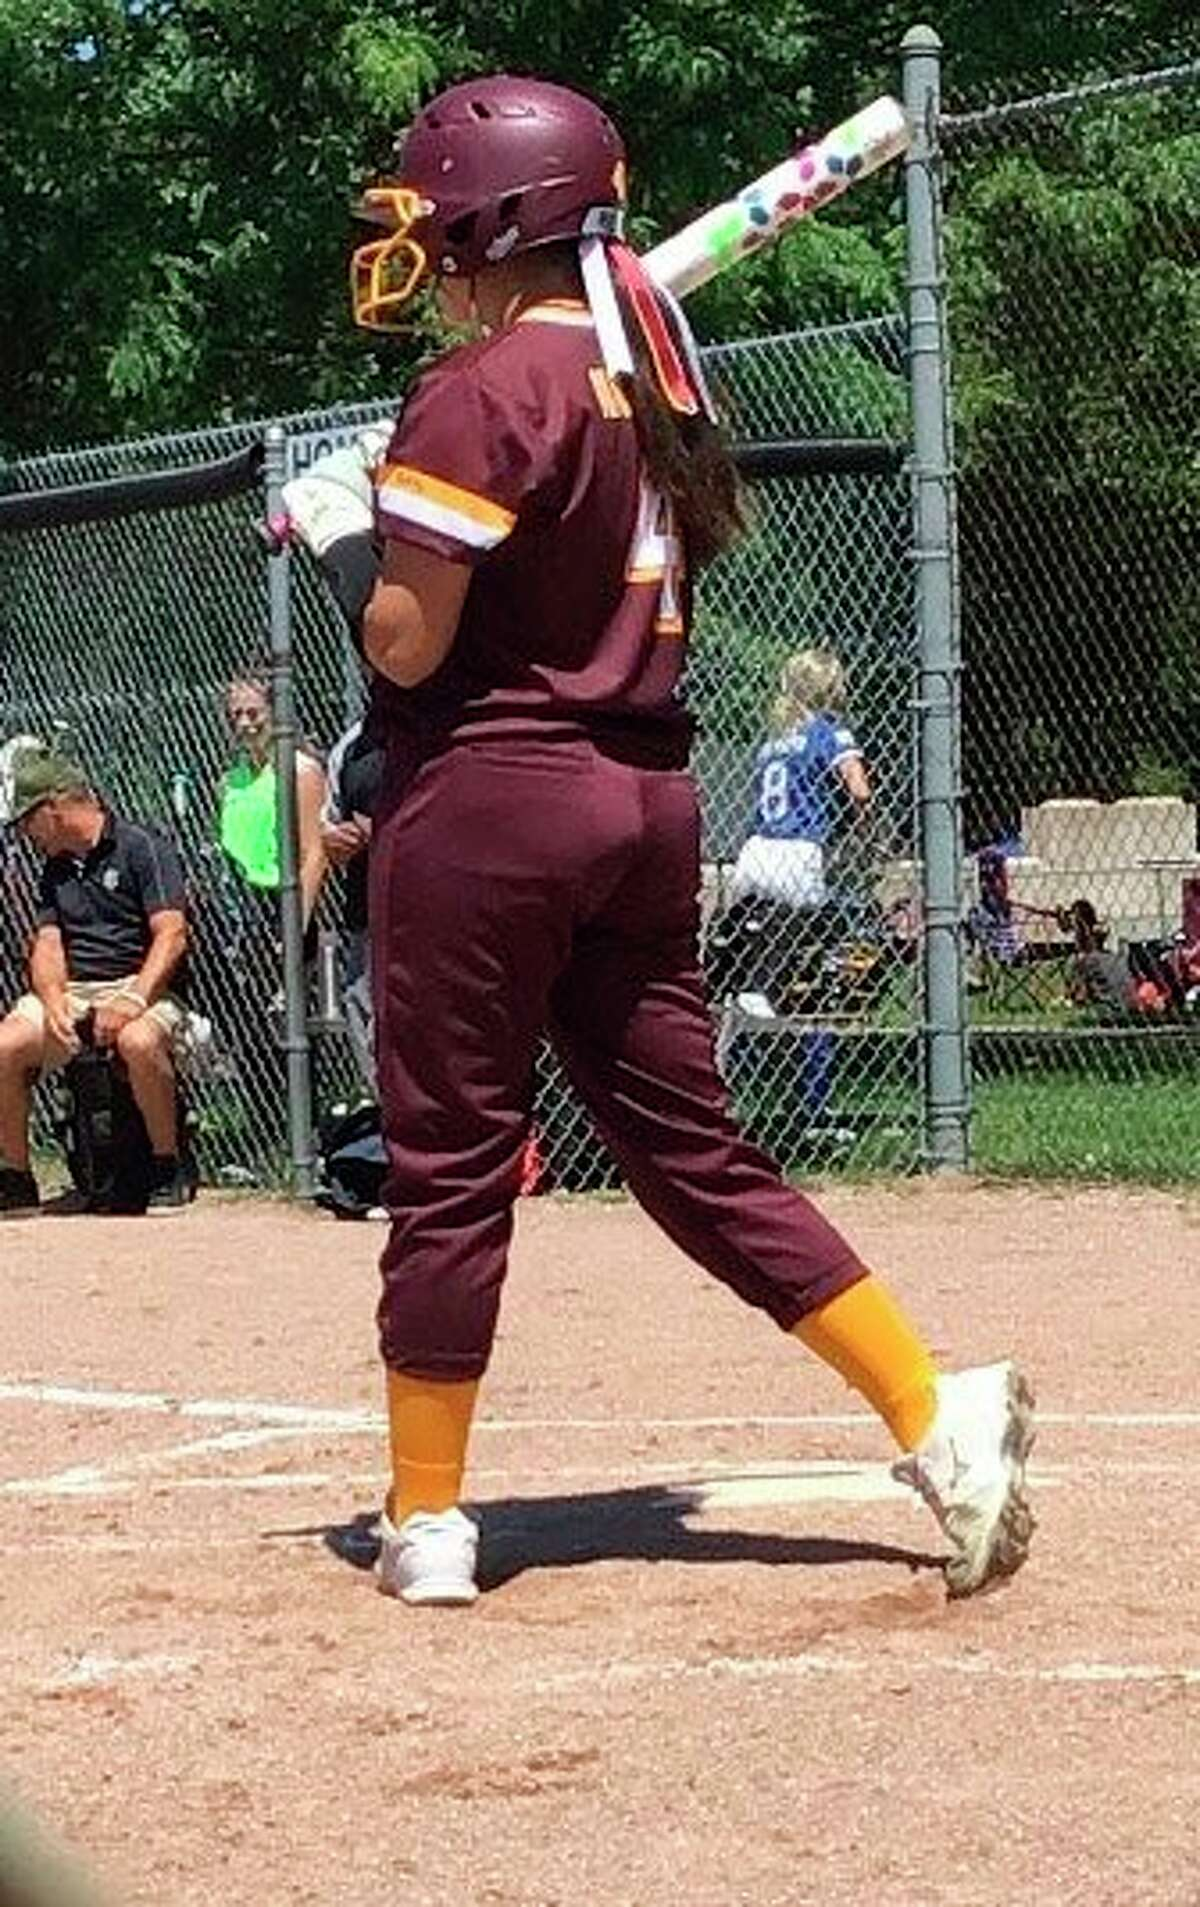 Hailey Maeder was one of three Chippewa Hills softball players to perform this summer for the Traverse City Thunder. (Courtesy photo)